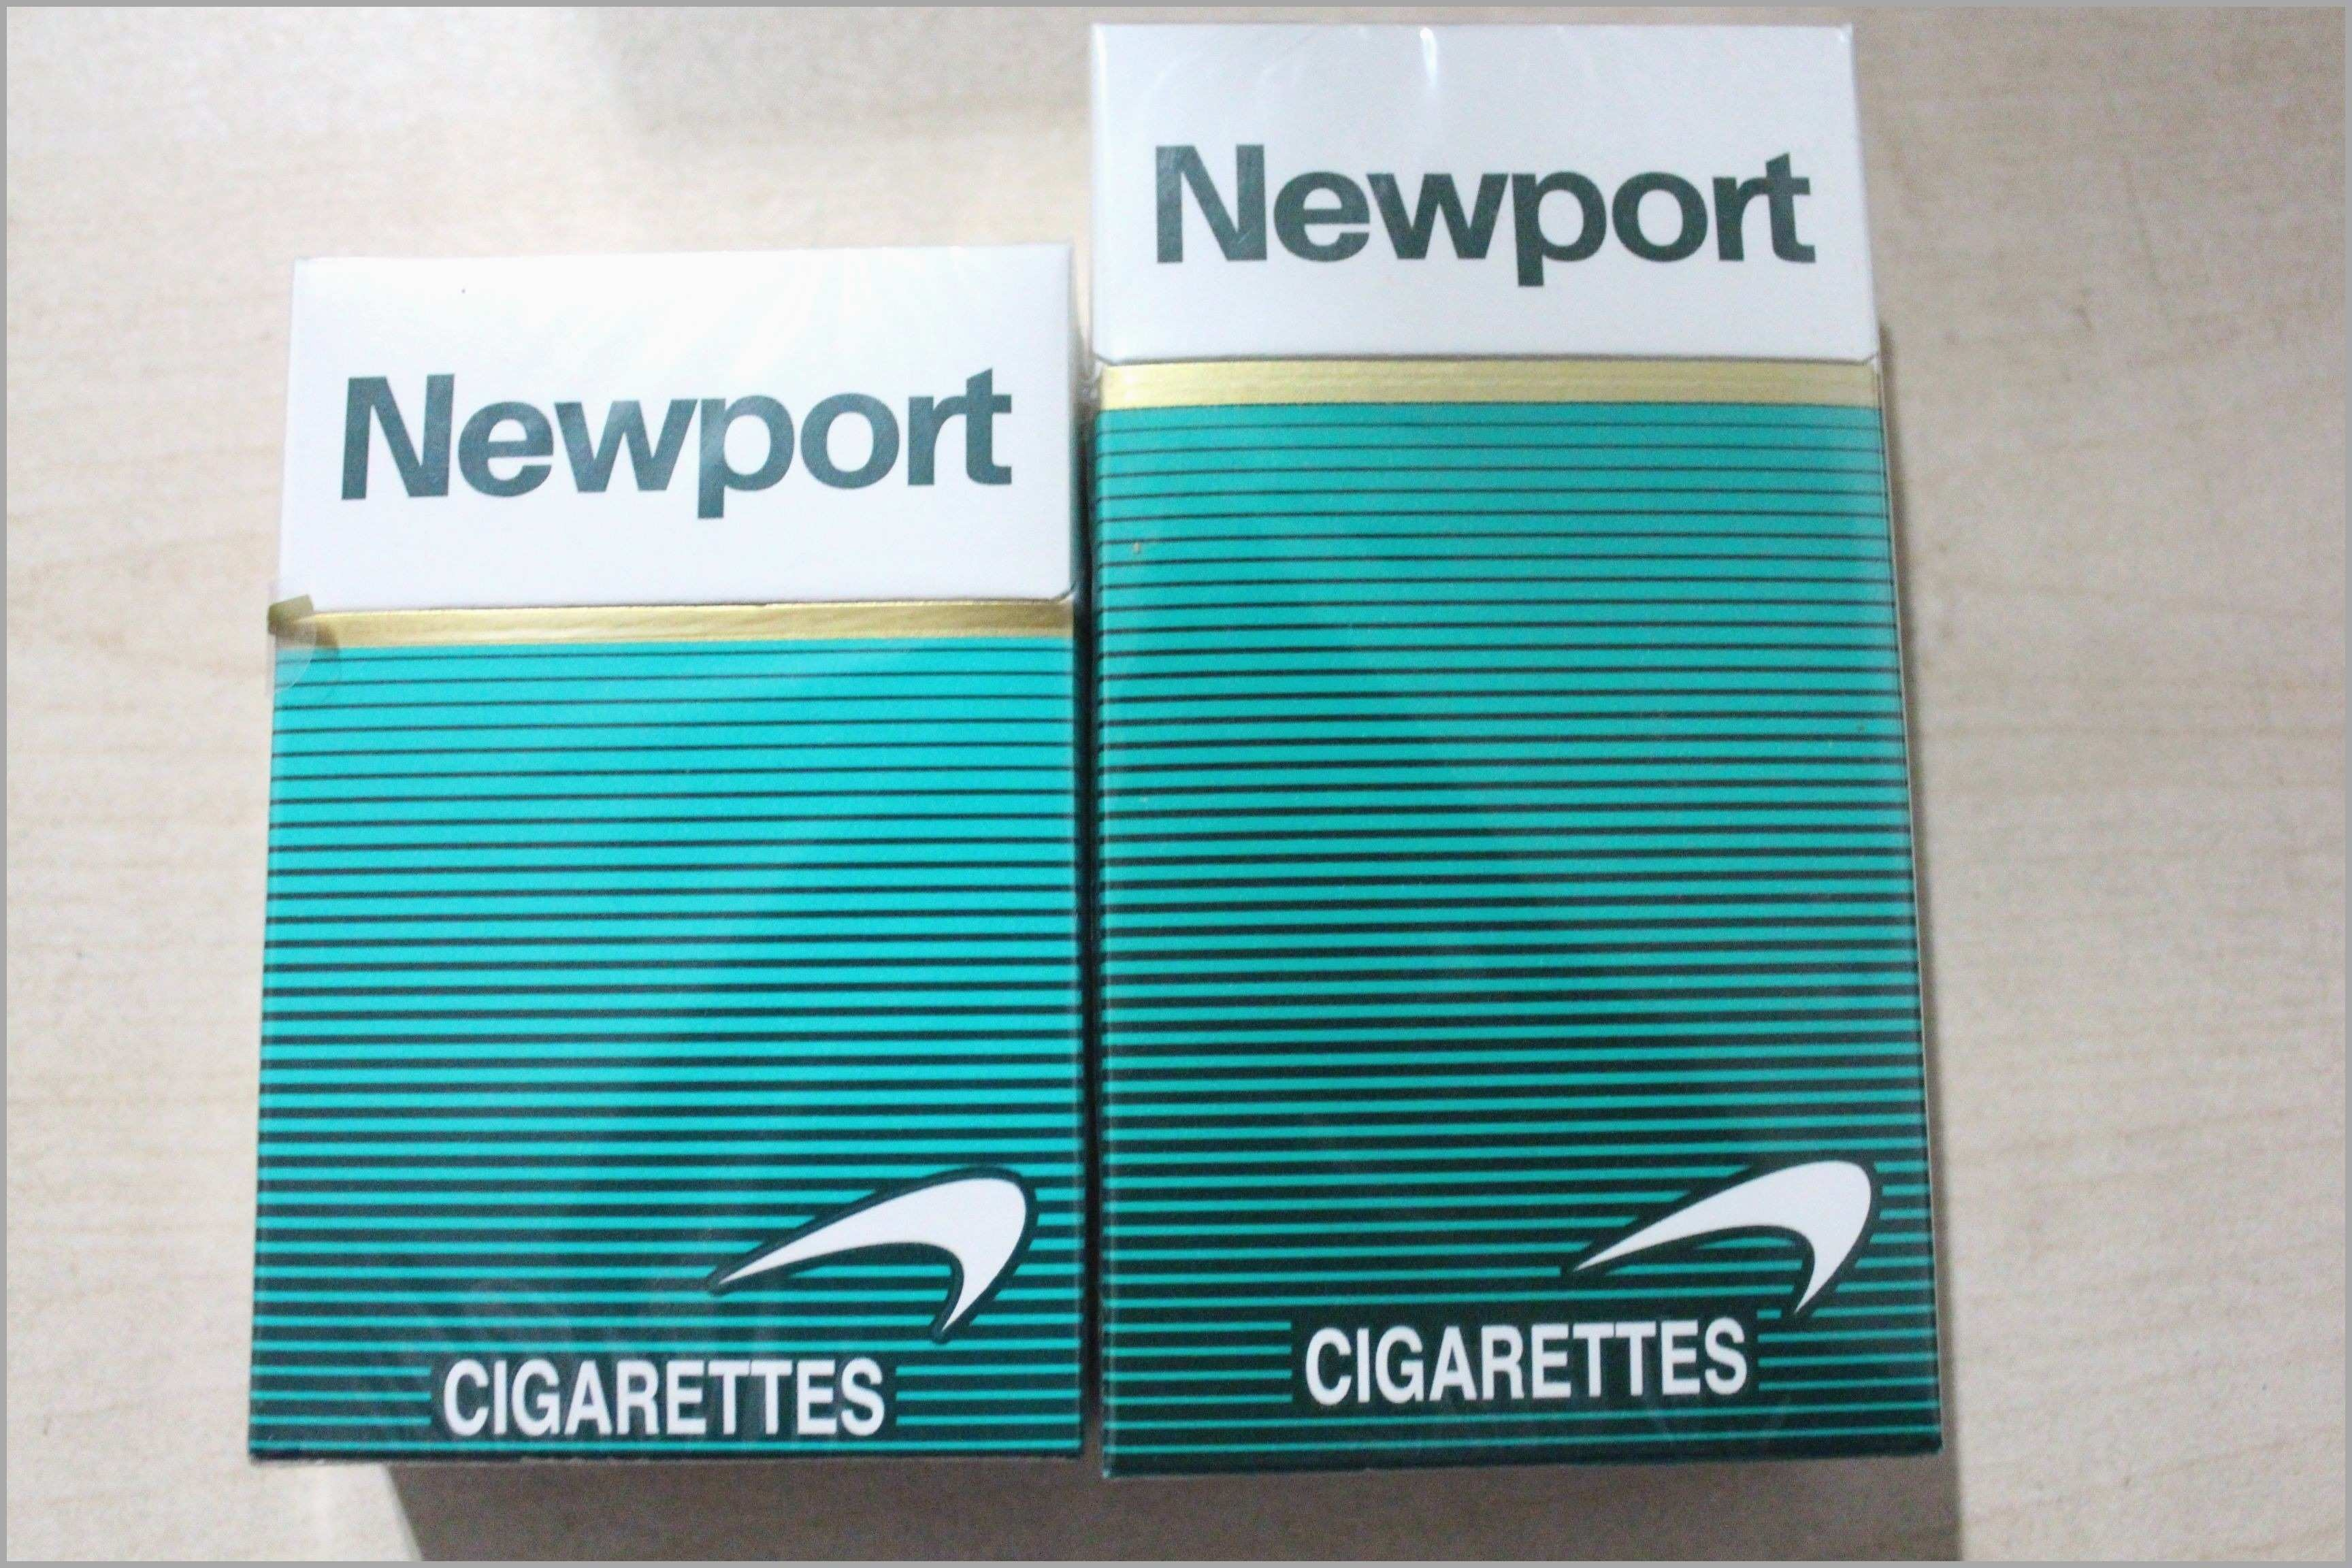 Newport Cigarettes Coupons Printable (80+ Images In Collection) Page 1 - Free Printable Newport Cigarette Coupons